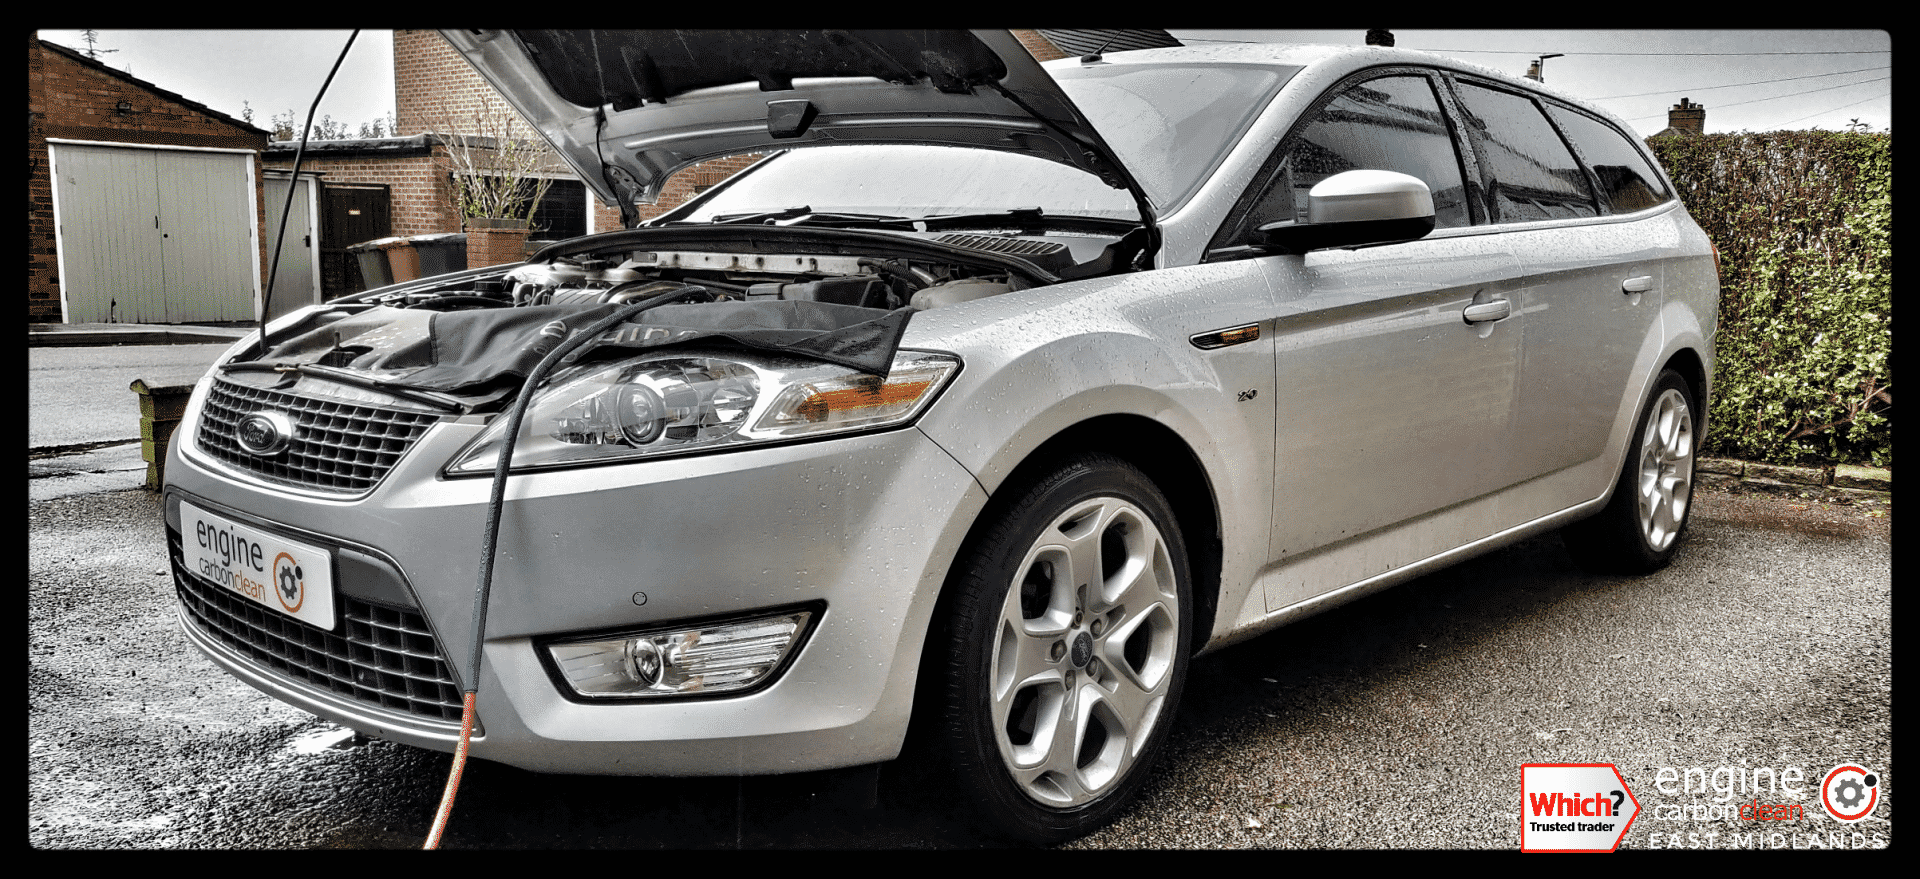 Diagnostic Consultation and Engine Carbon Clean - Ford Mondeo 2.0 TDCi (2009 - 139,366 miles)